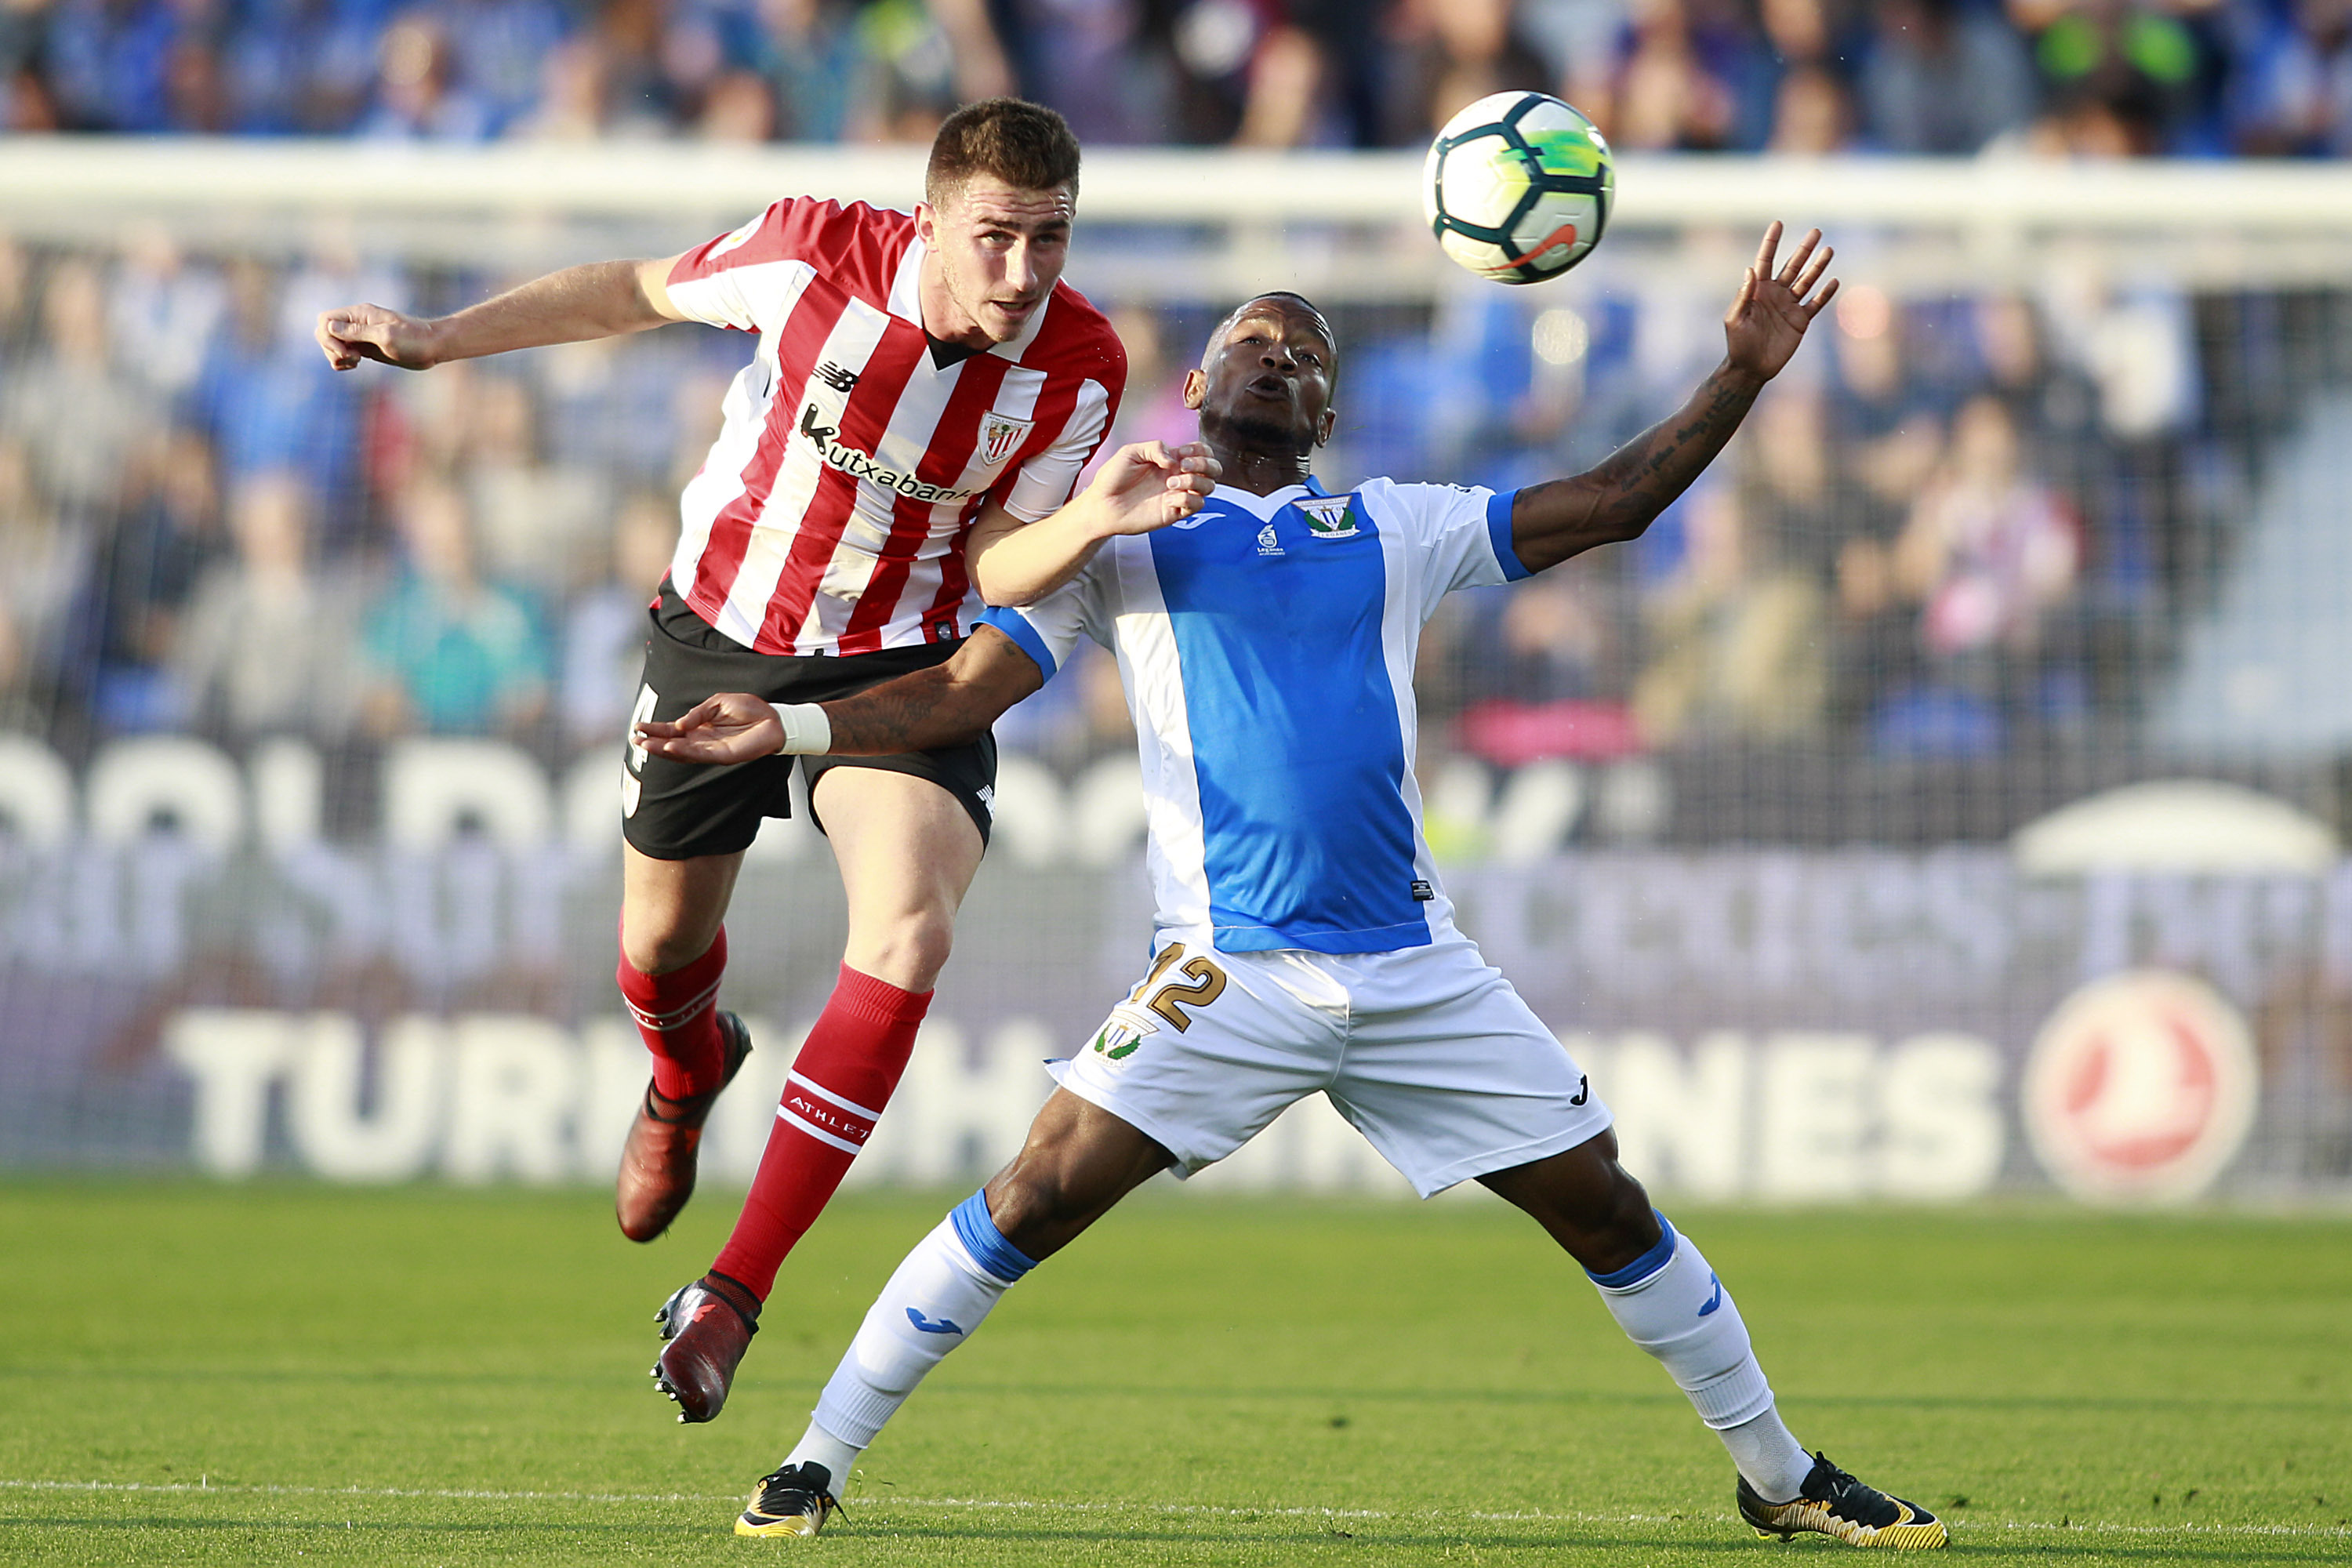 Man City in talks to sign Aymeric Laporte from Athletic Bilbao